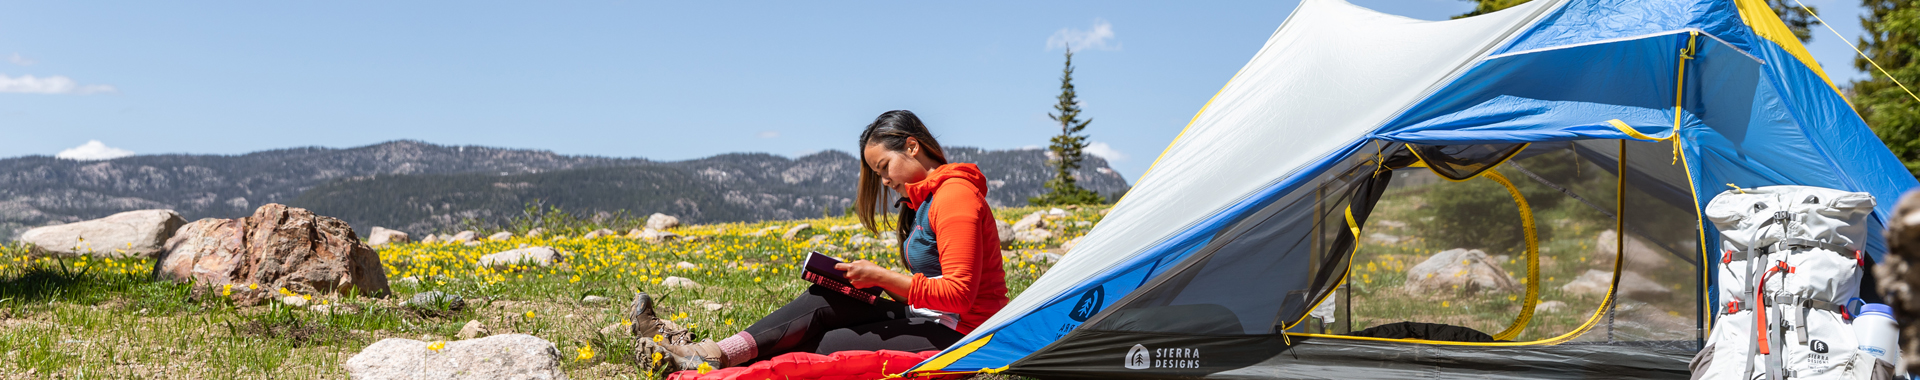 Woman sitting next to a Sierra Designs tent